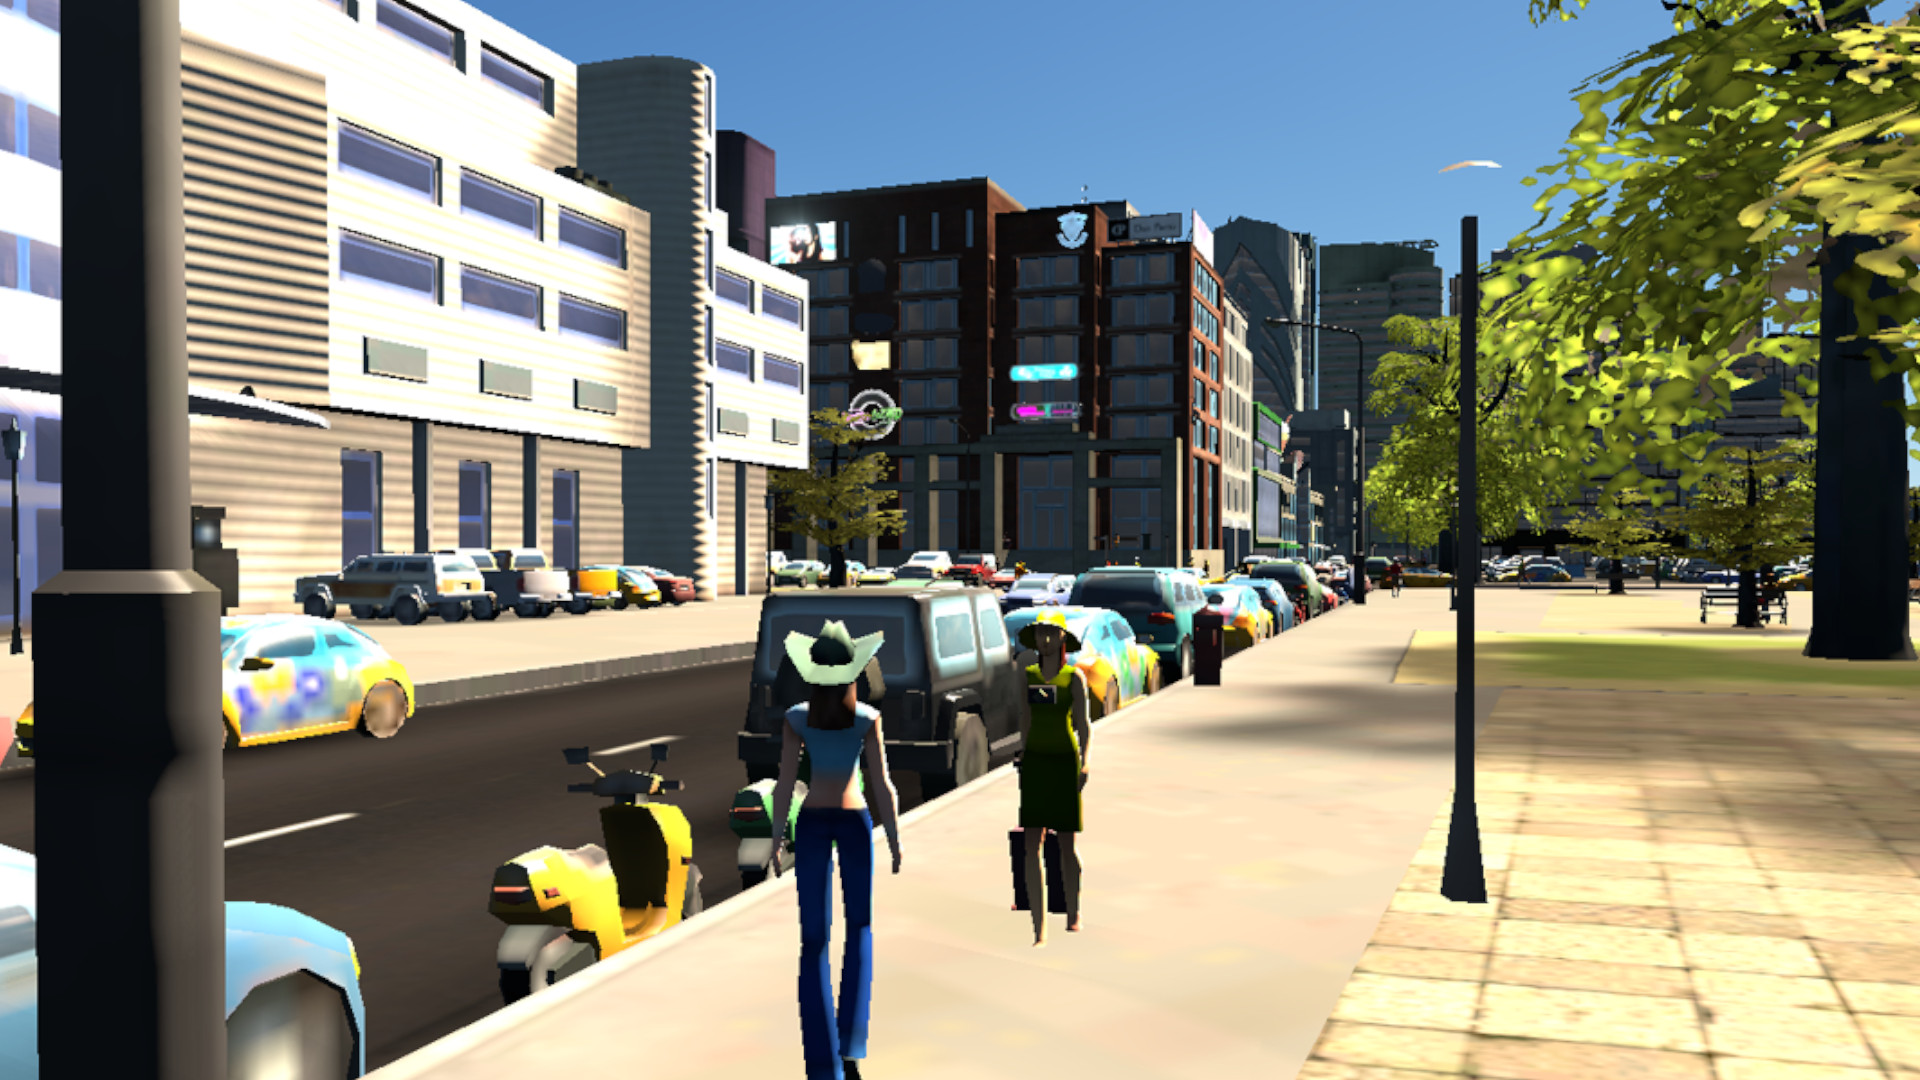 This Cities: Skylines mod lets you walk and drive around